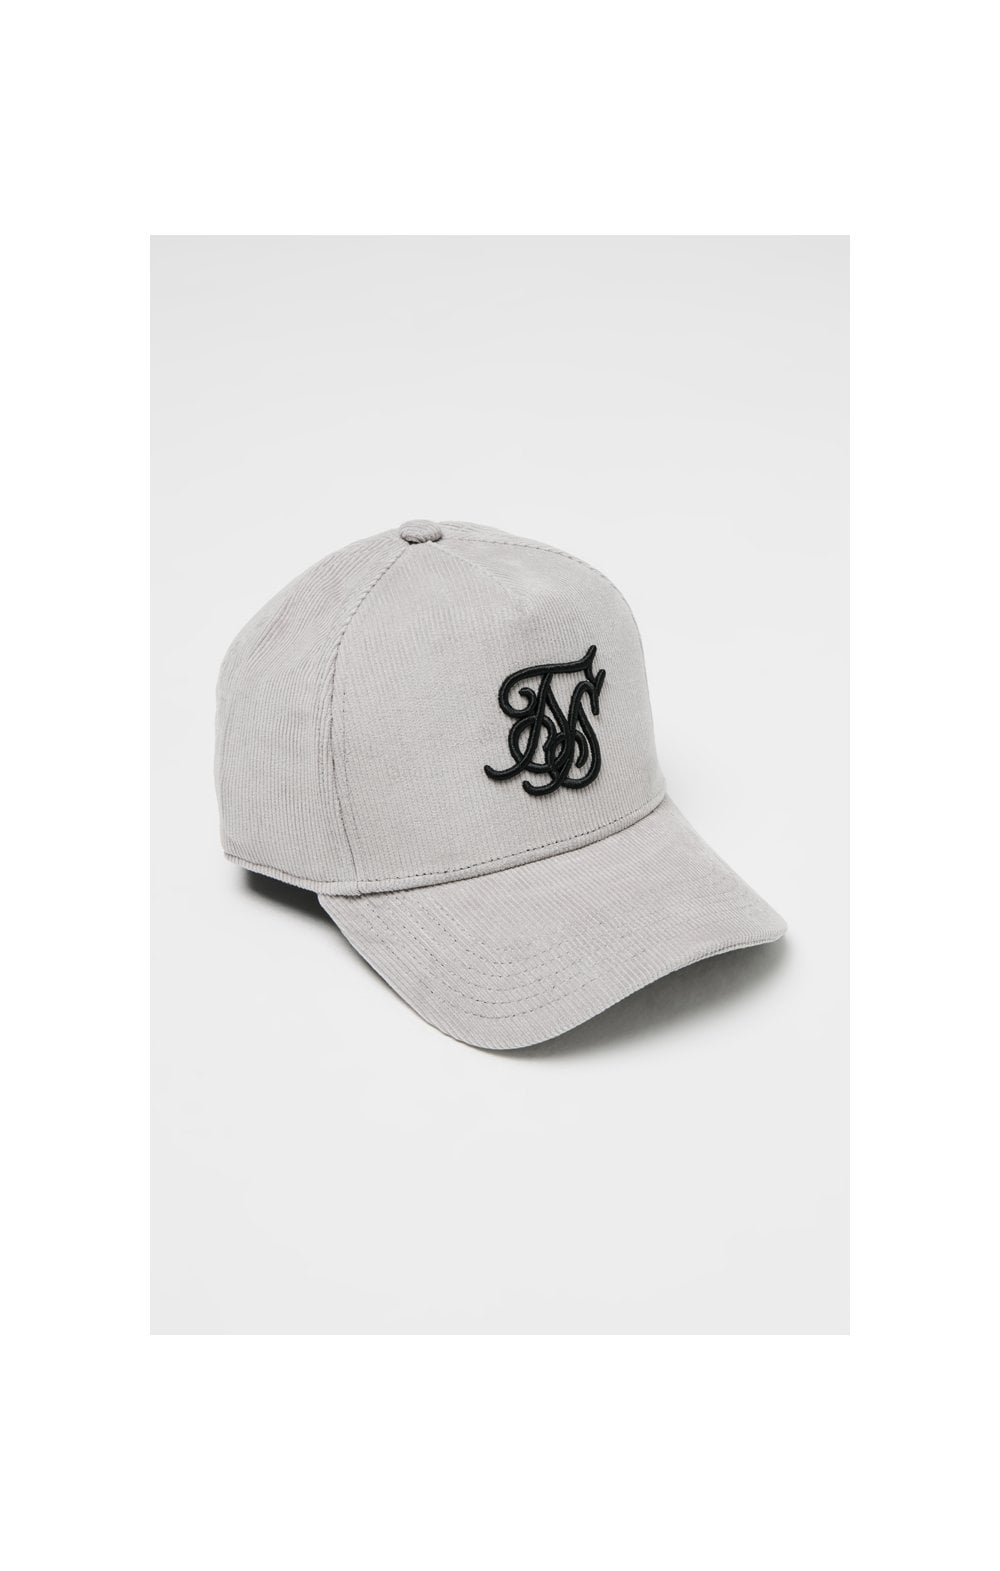 SikSilk Corduroy Full Trucker - Light Grey